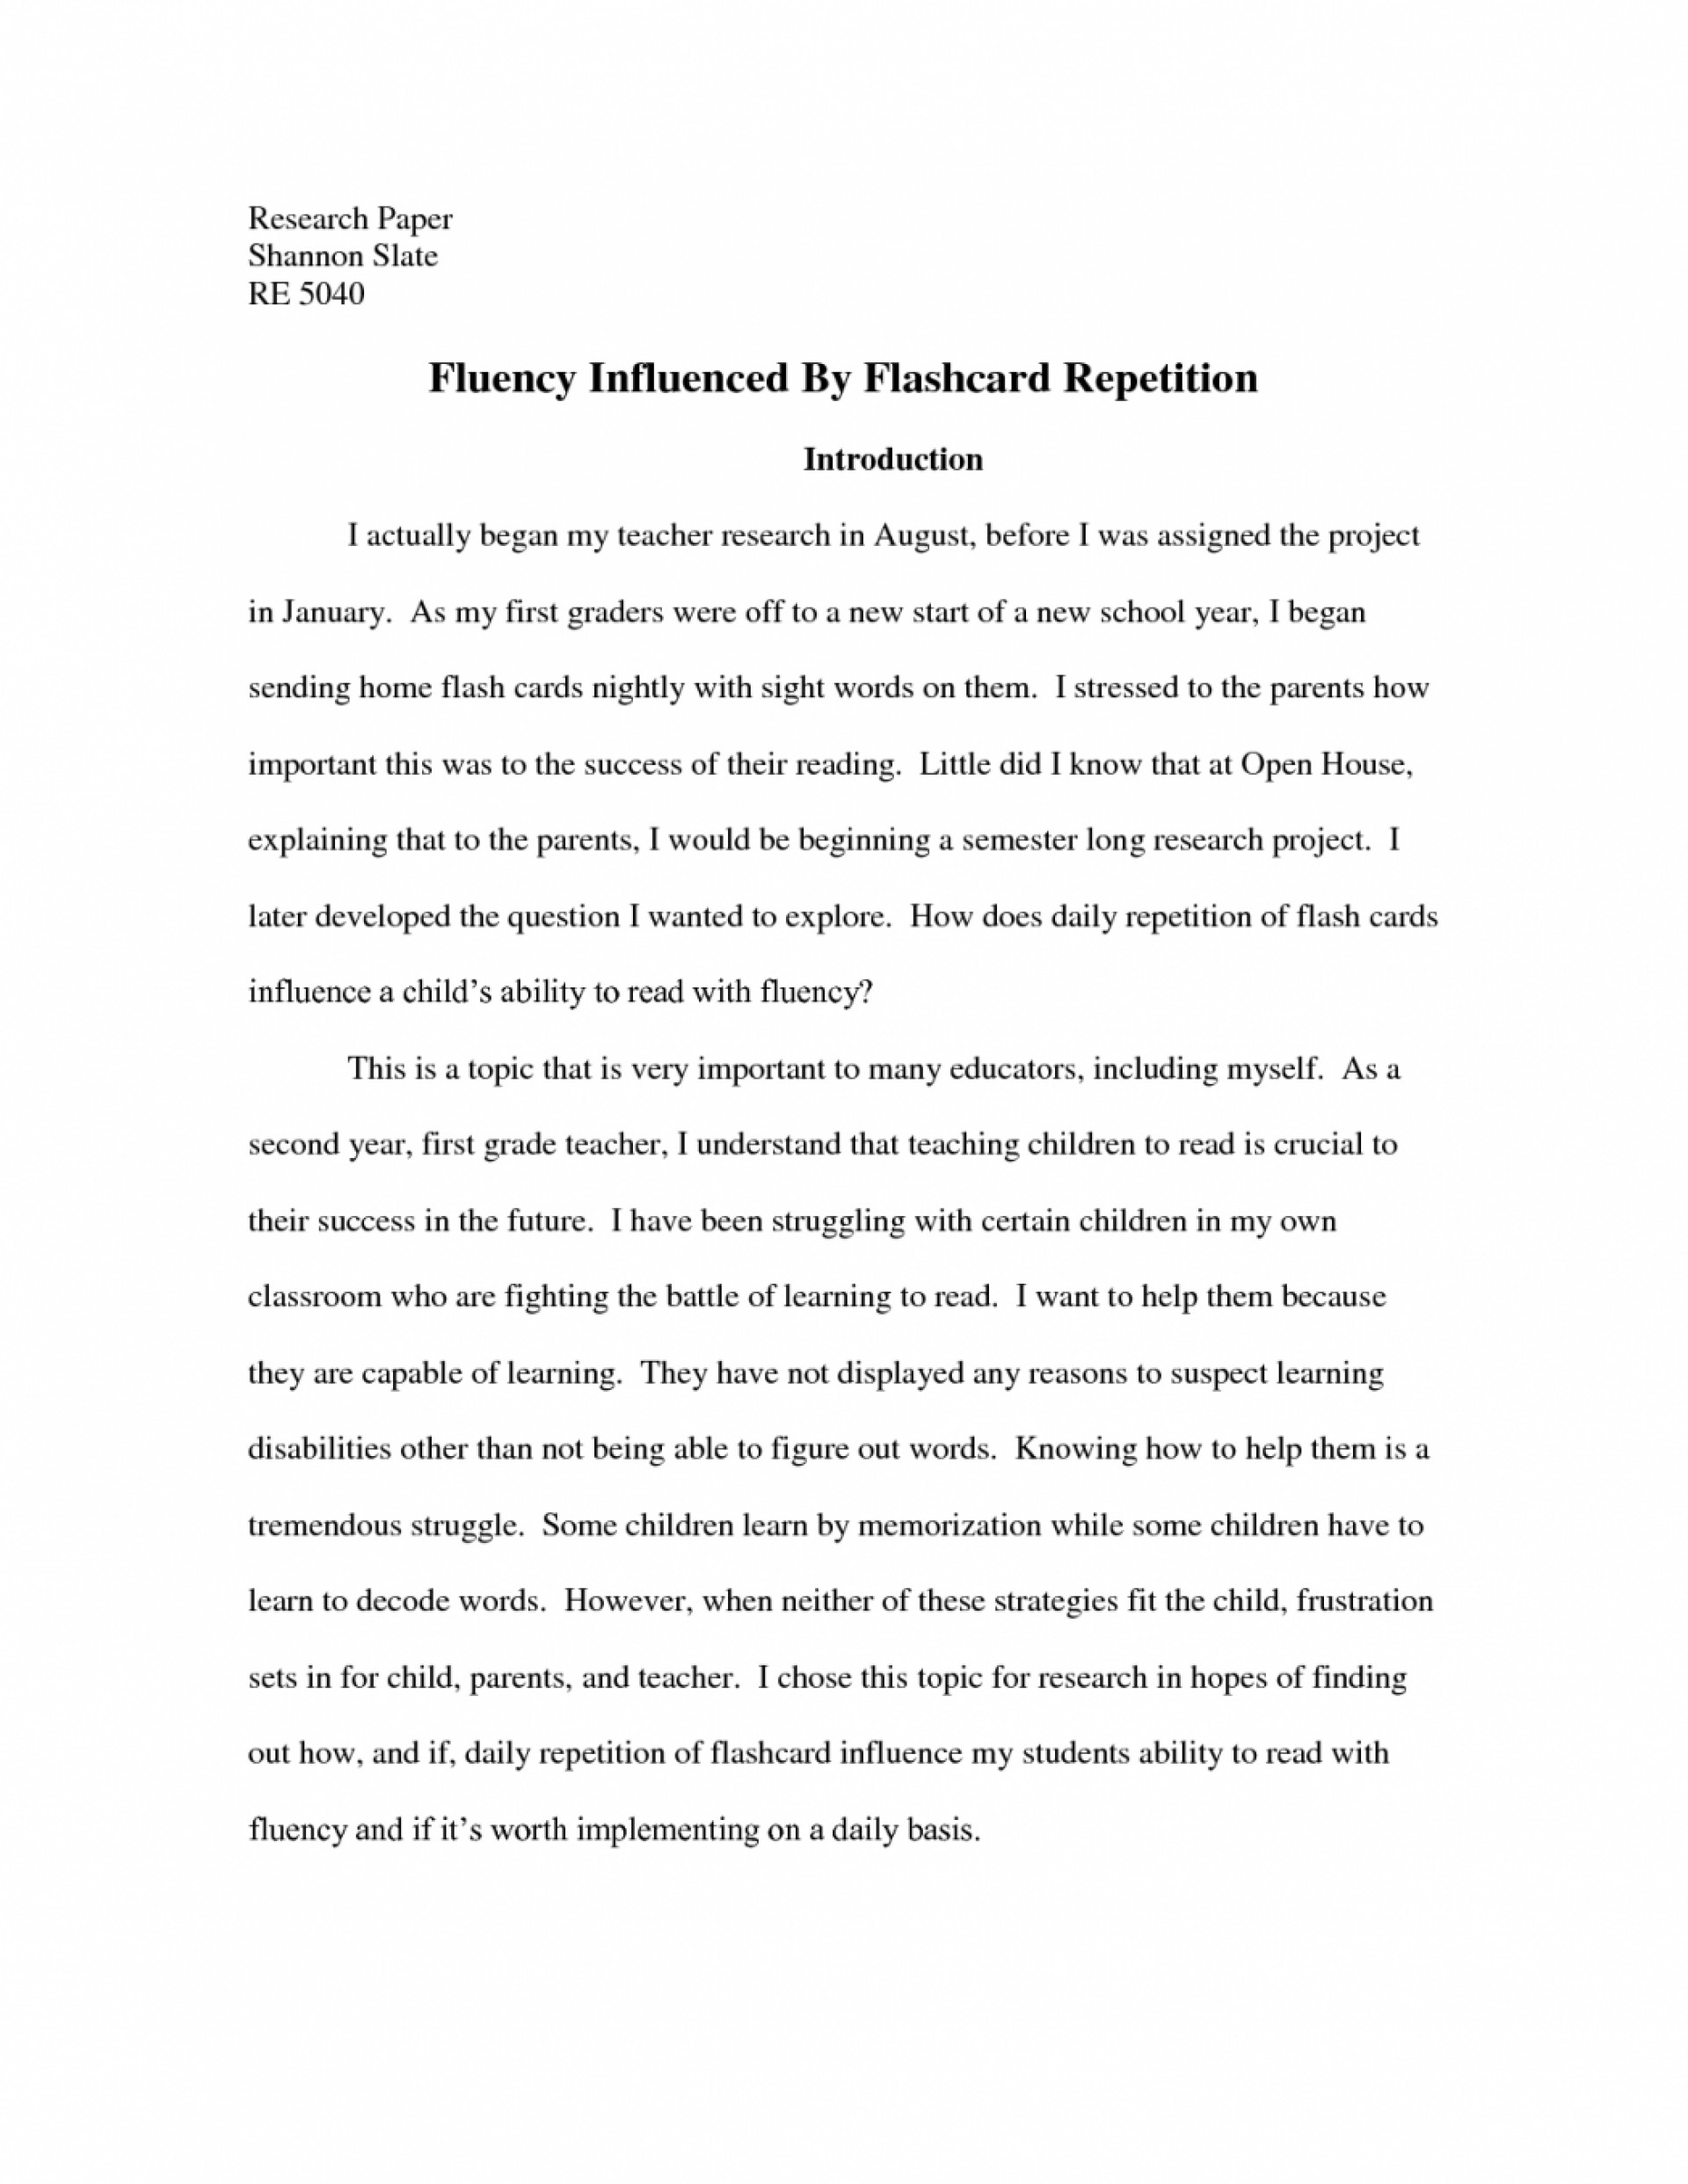 009 Words To Start Off Essay Begin Paragraph In An Argumentative Conclusion Persuasive End The First Body Sentence 1048x1356 Example Excellent How Introduction A Narrative Write Good About Your Life 1920